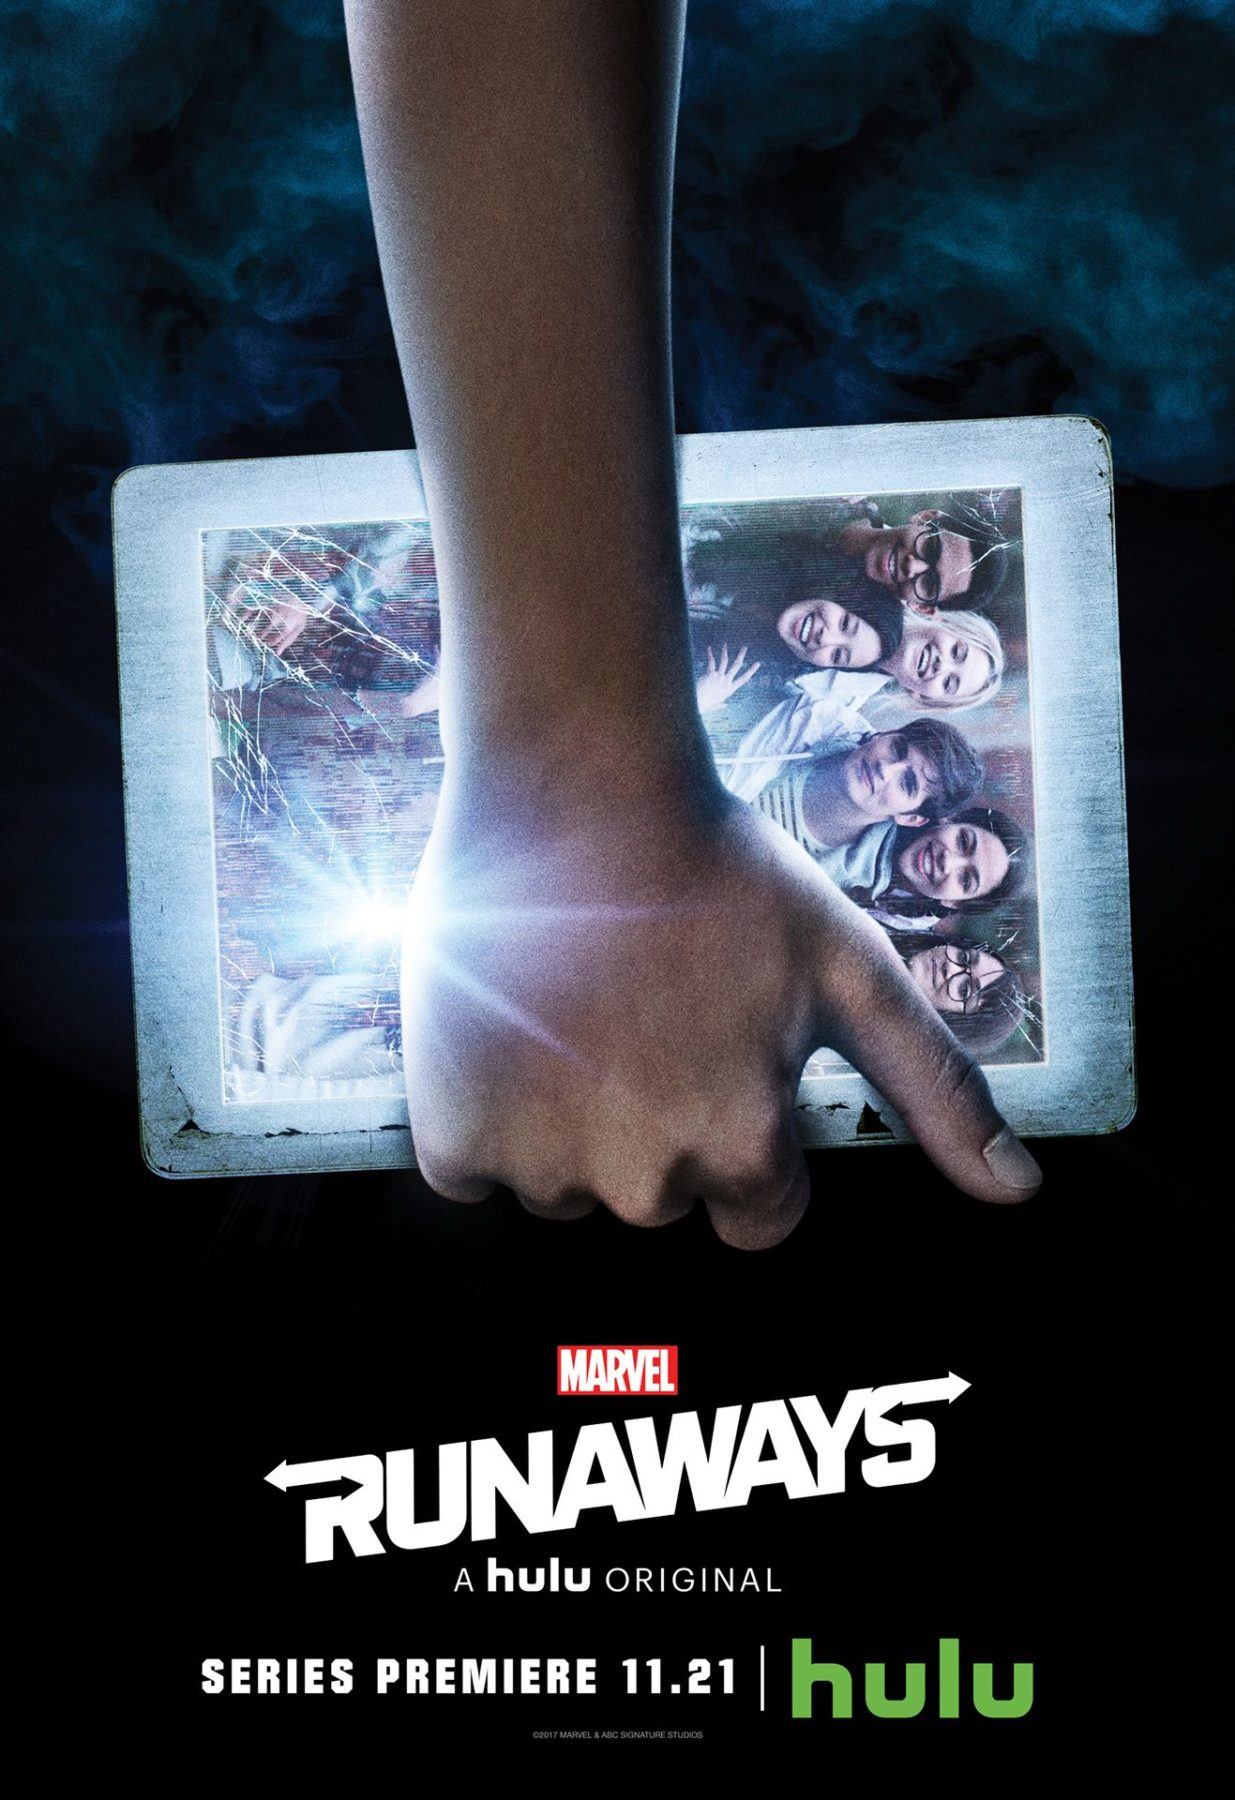 New character posters for Marvel's Runaways | Flickering Myth